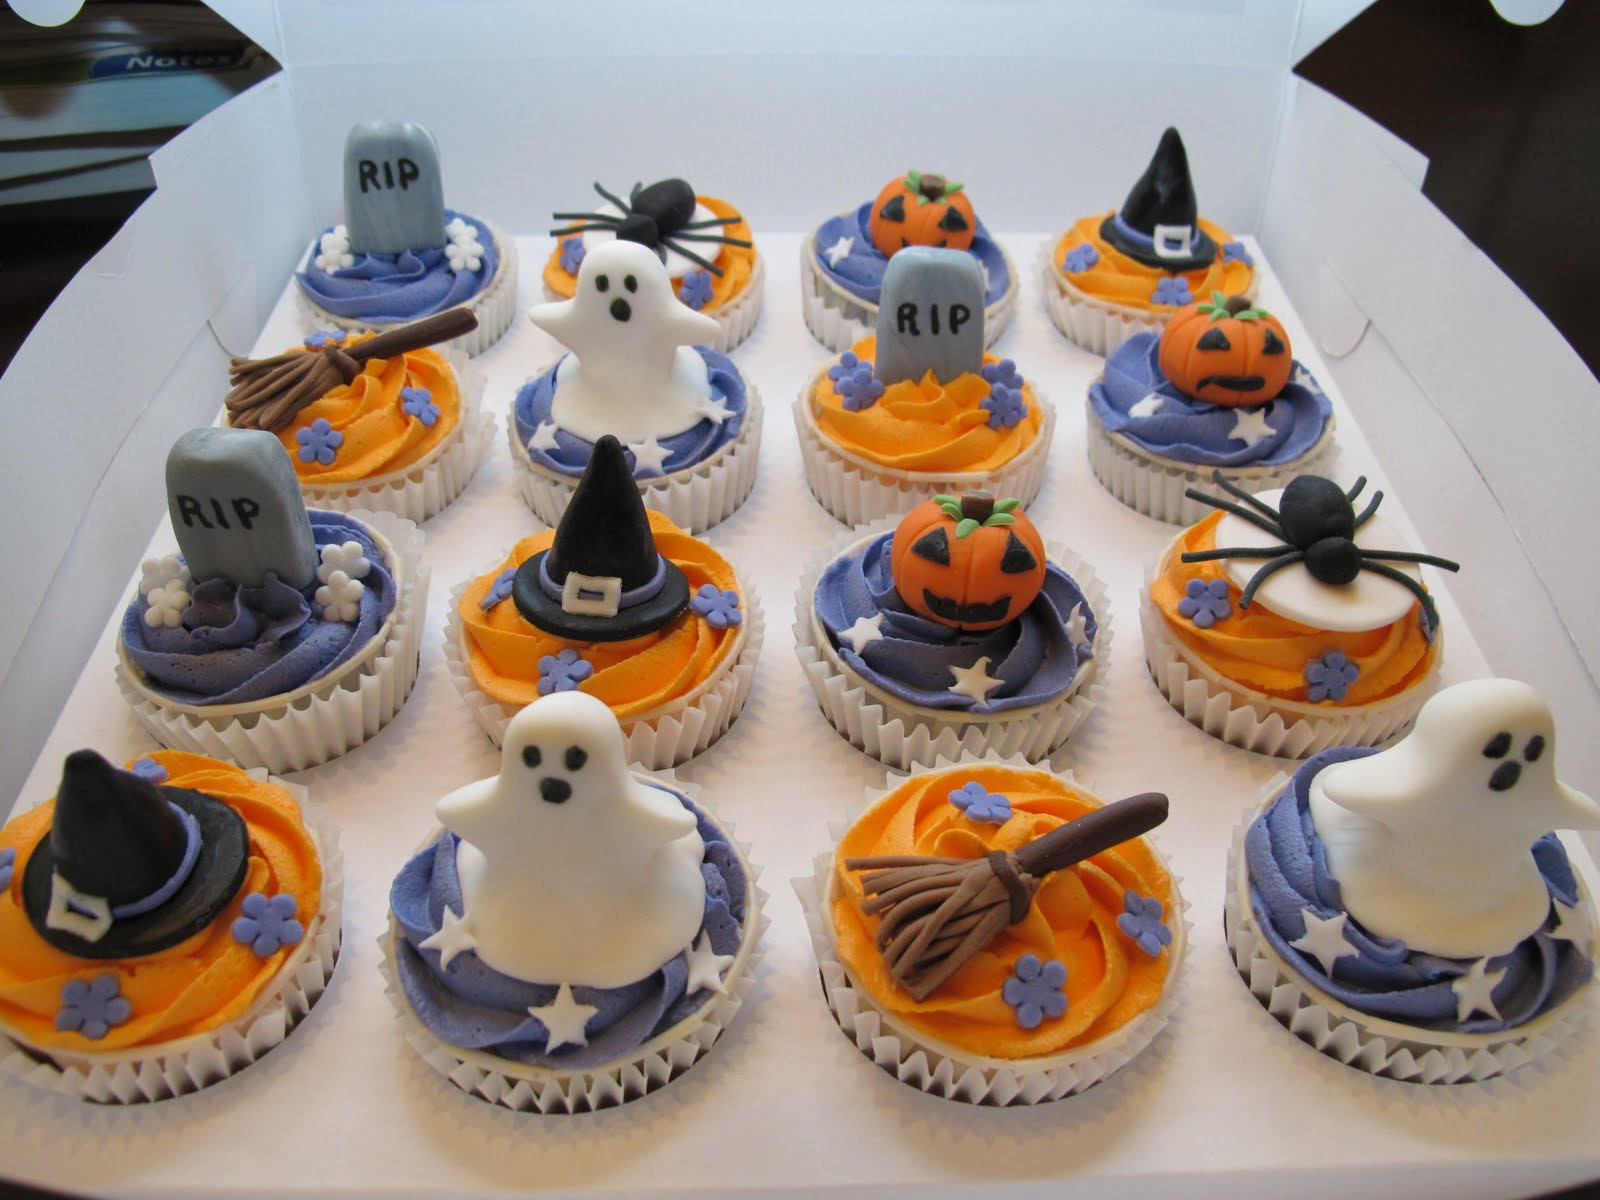 Halloween Cakes And Cupcakes  Pink Oven Cakes and Cookies Halloween cupcake ideas